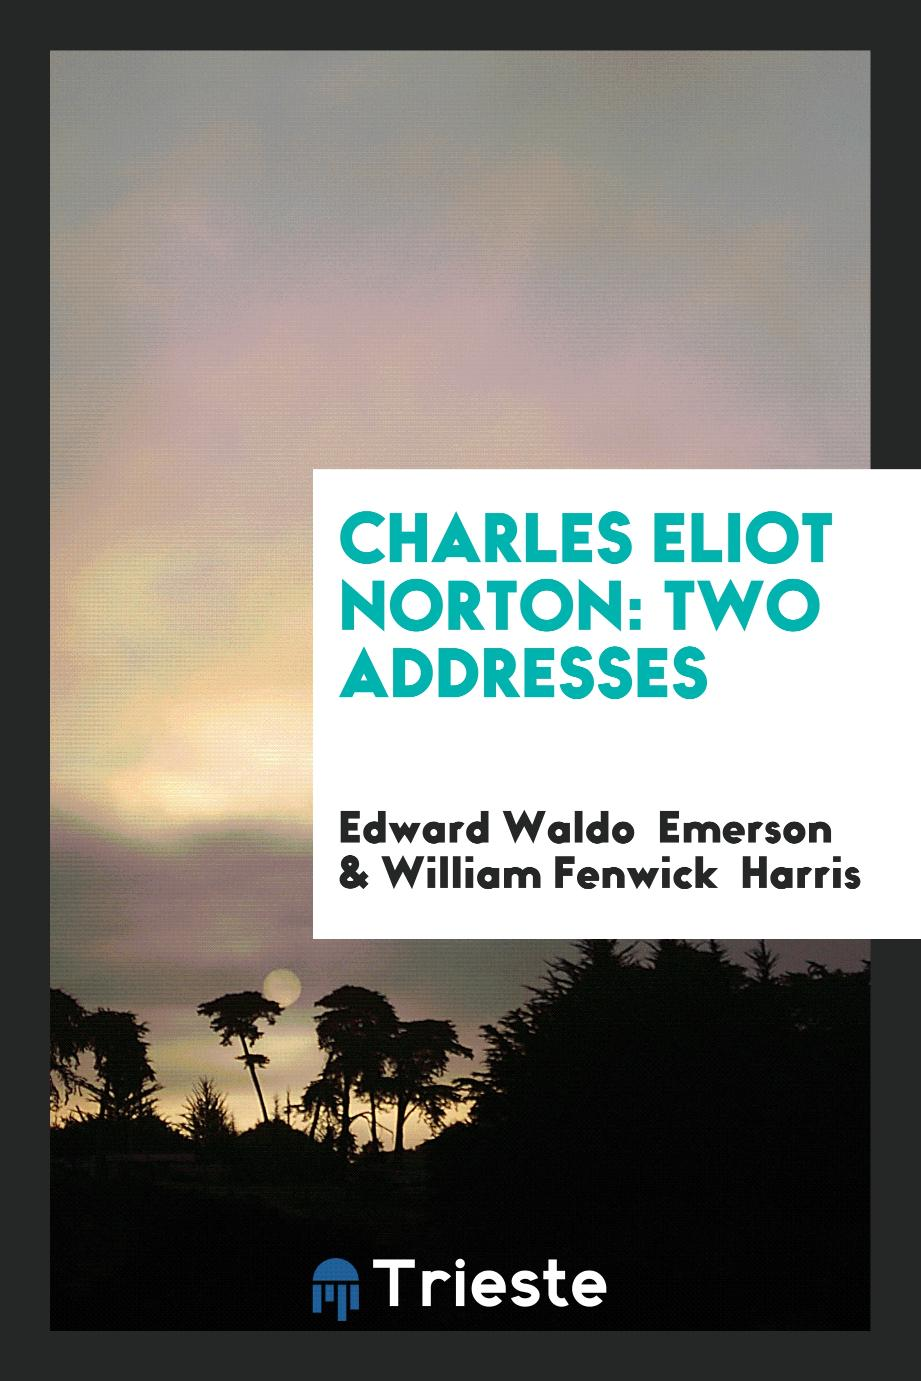 Charles Eliot Norton: Two Addresses